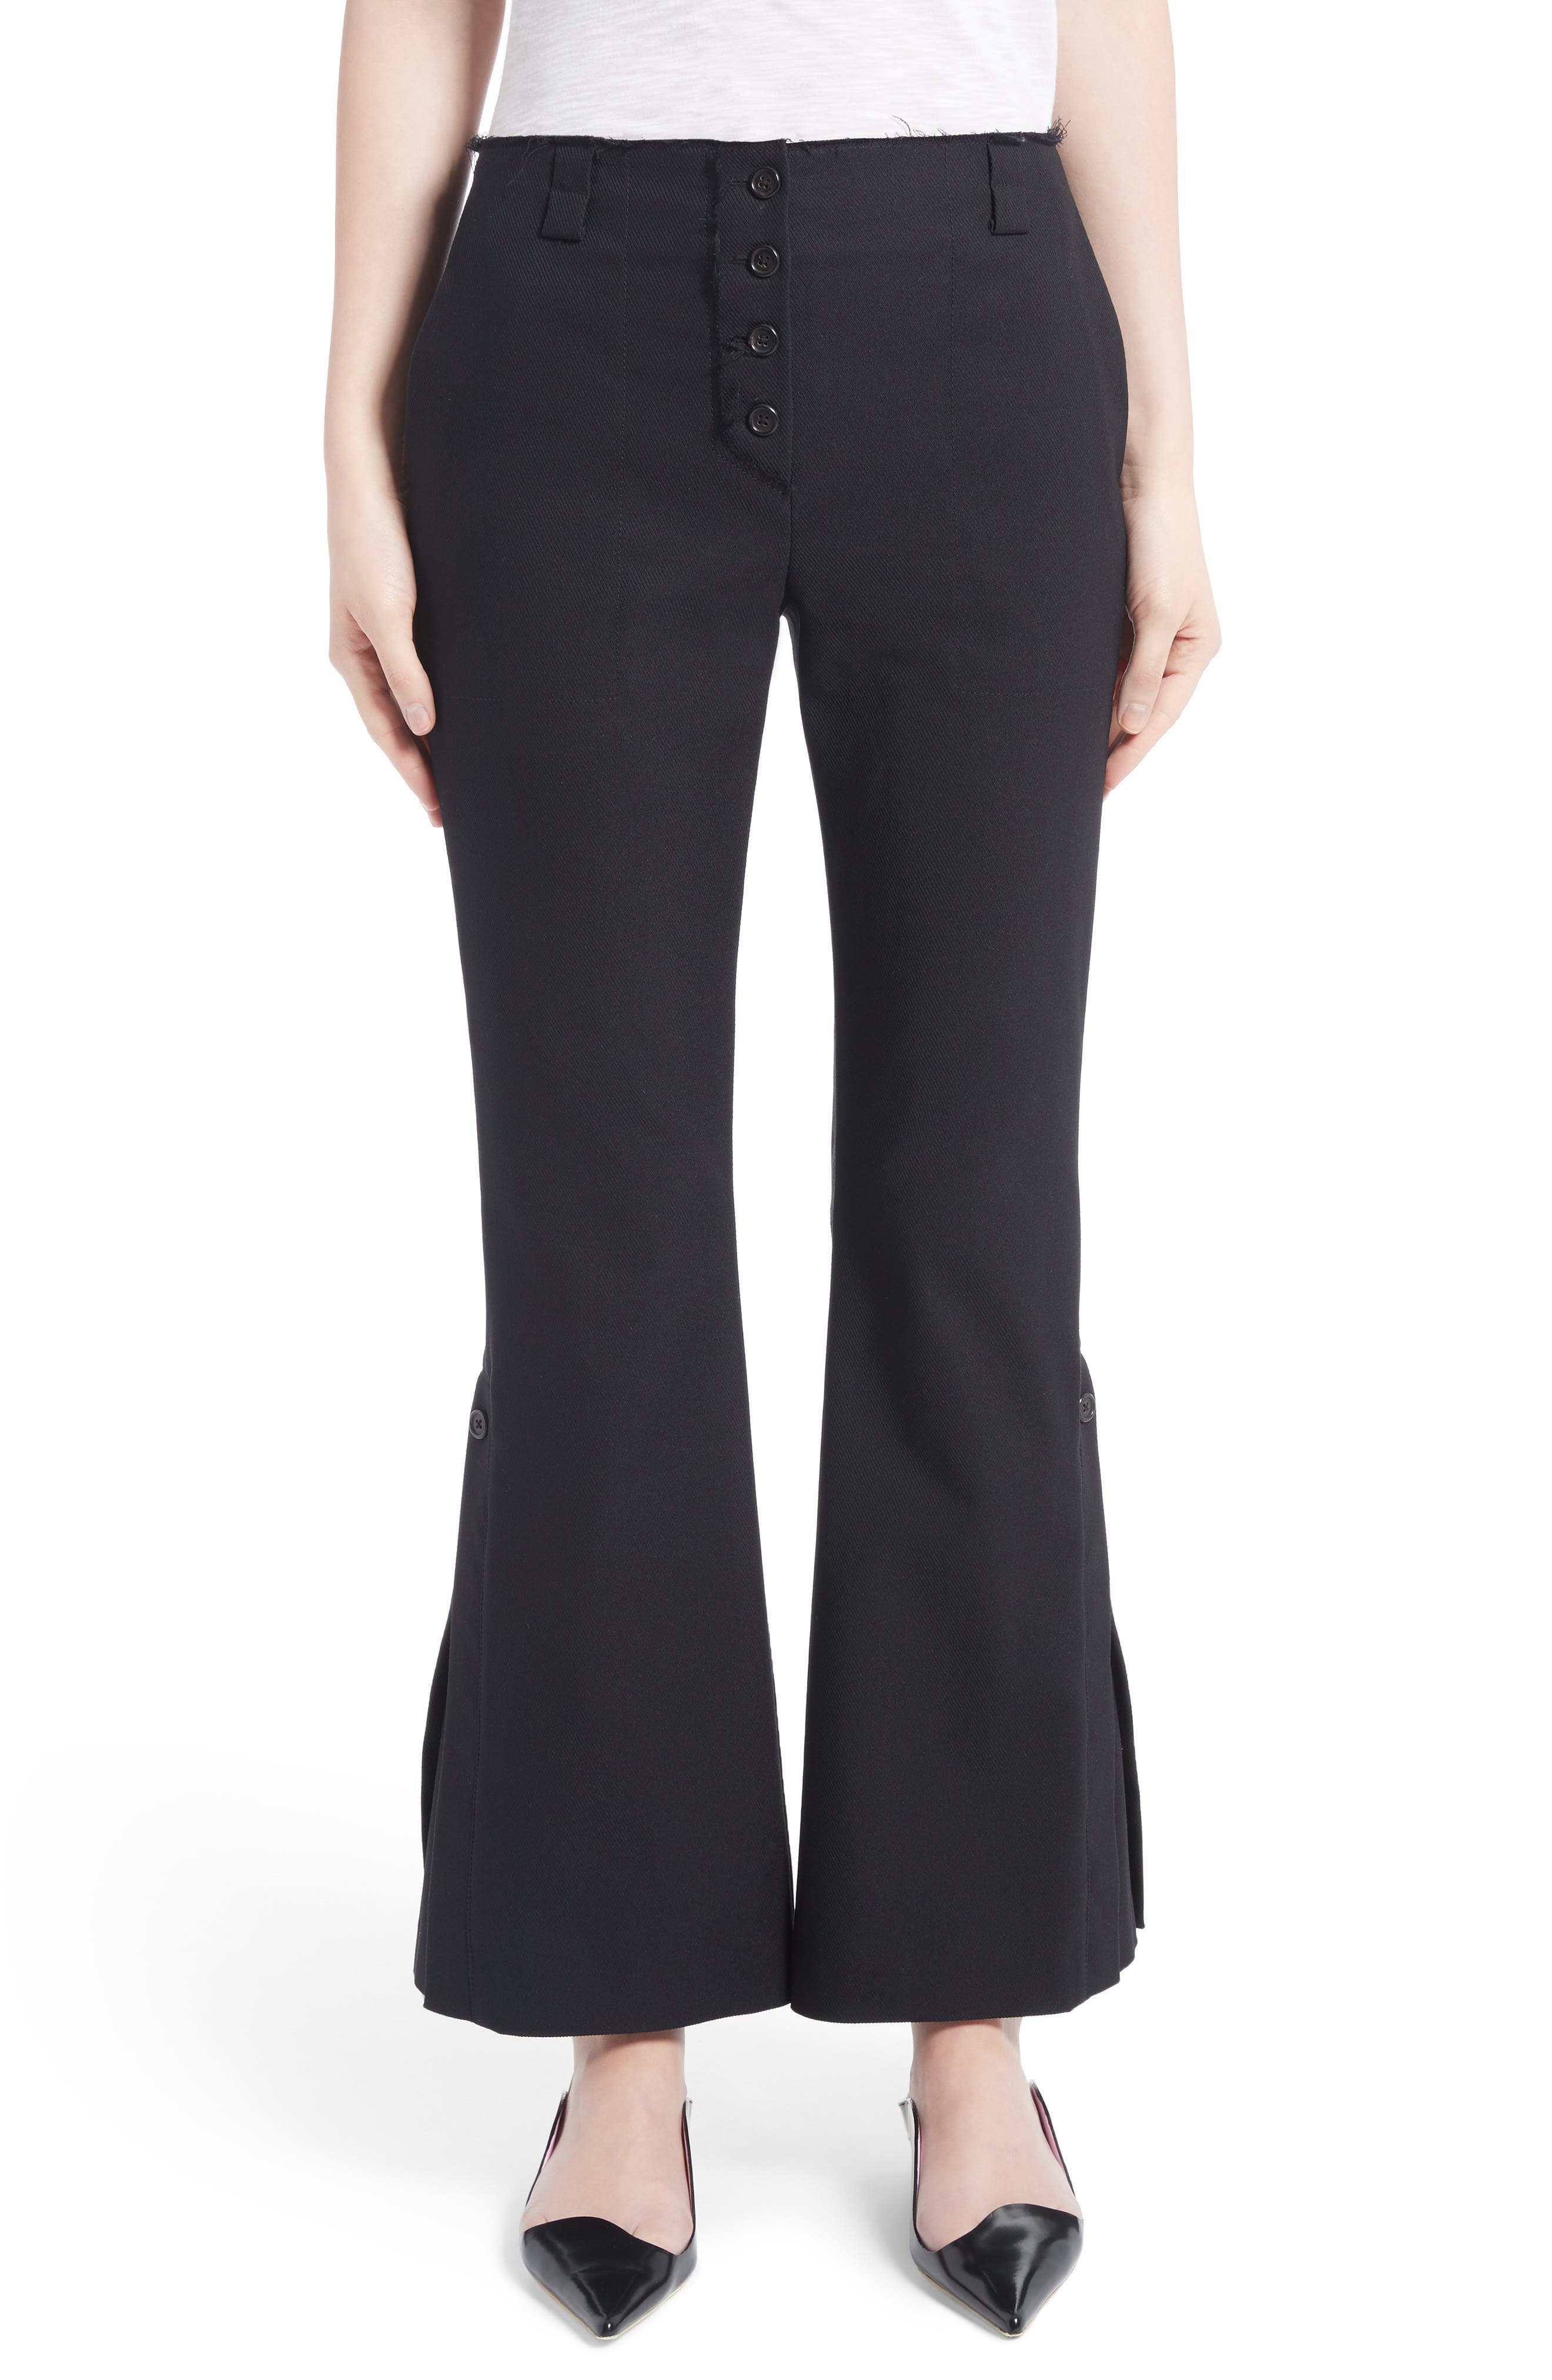 Alternate Image 1 Selected - Proenza Schouler Stretch Cotton Blend Flare Pants